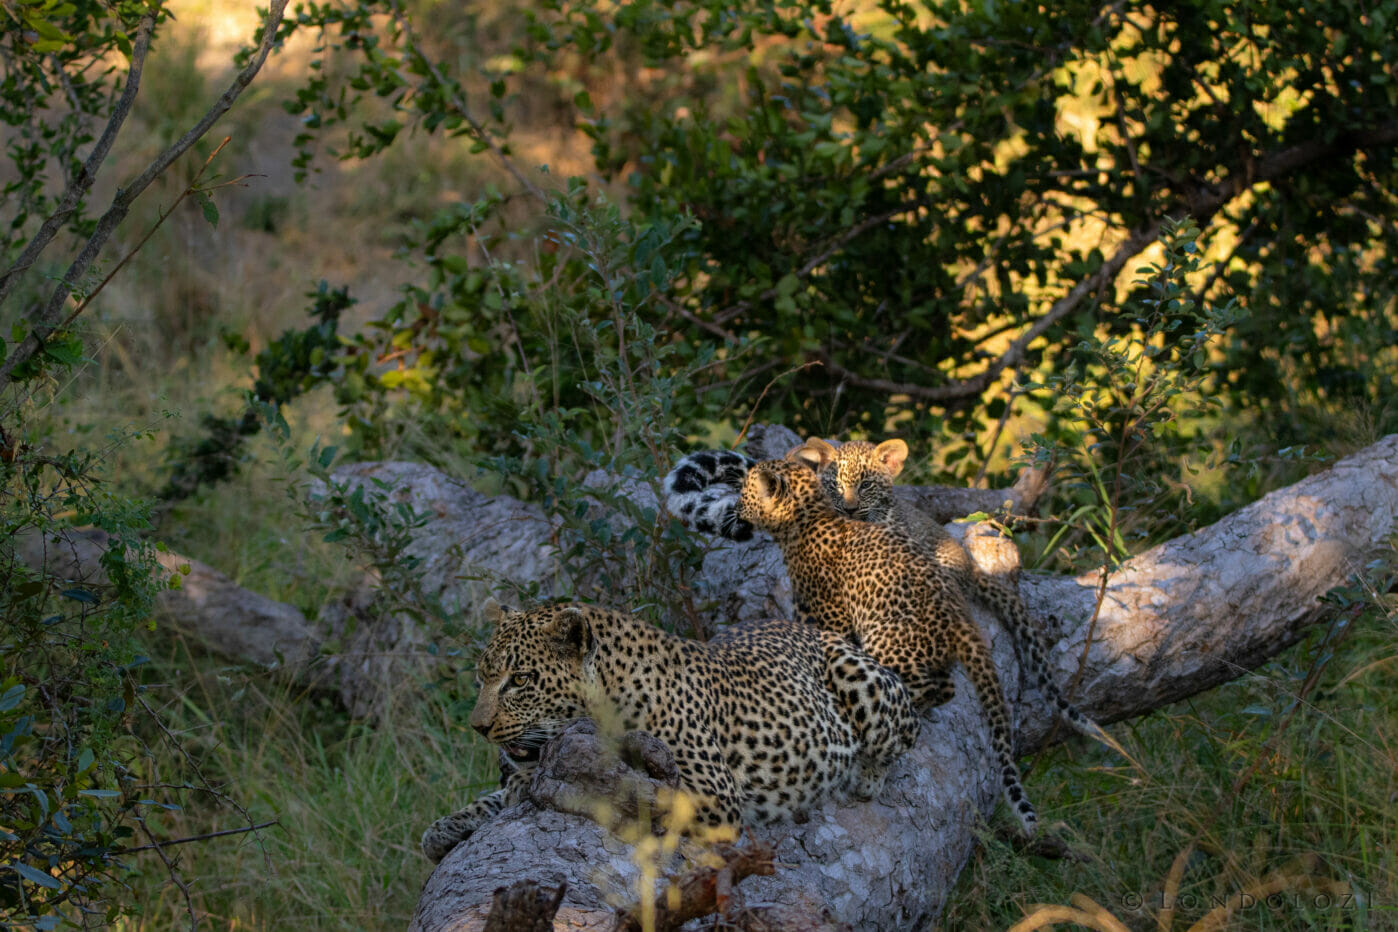 The Nkoveni Female and her cubs